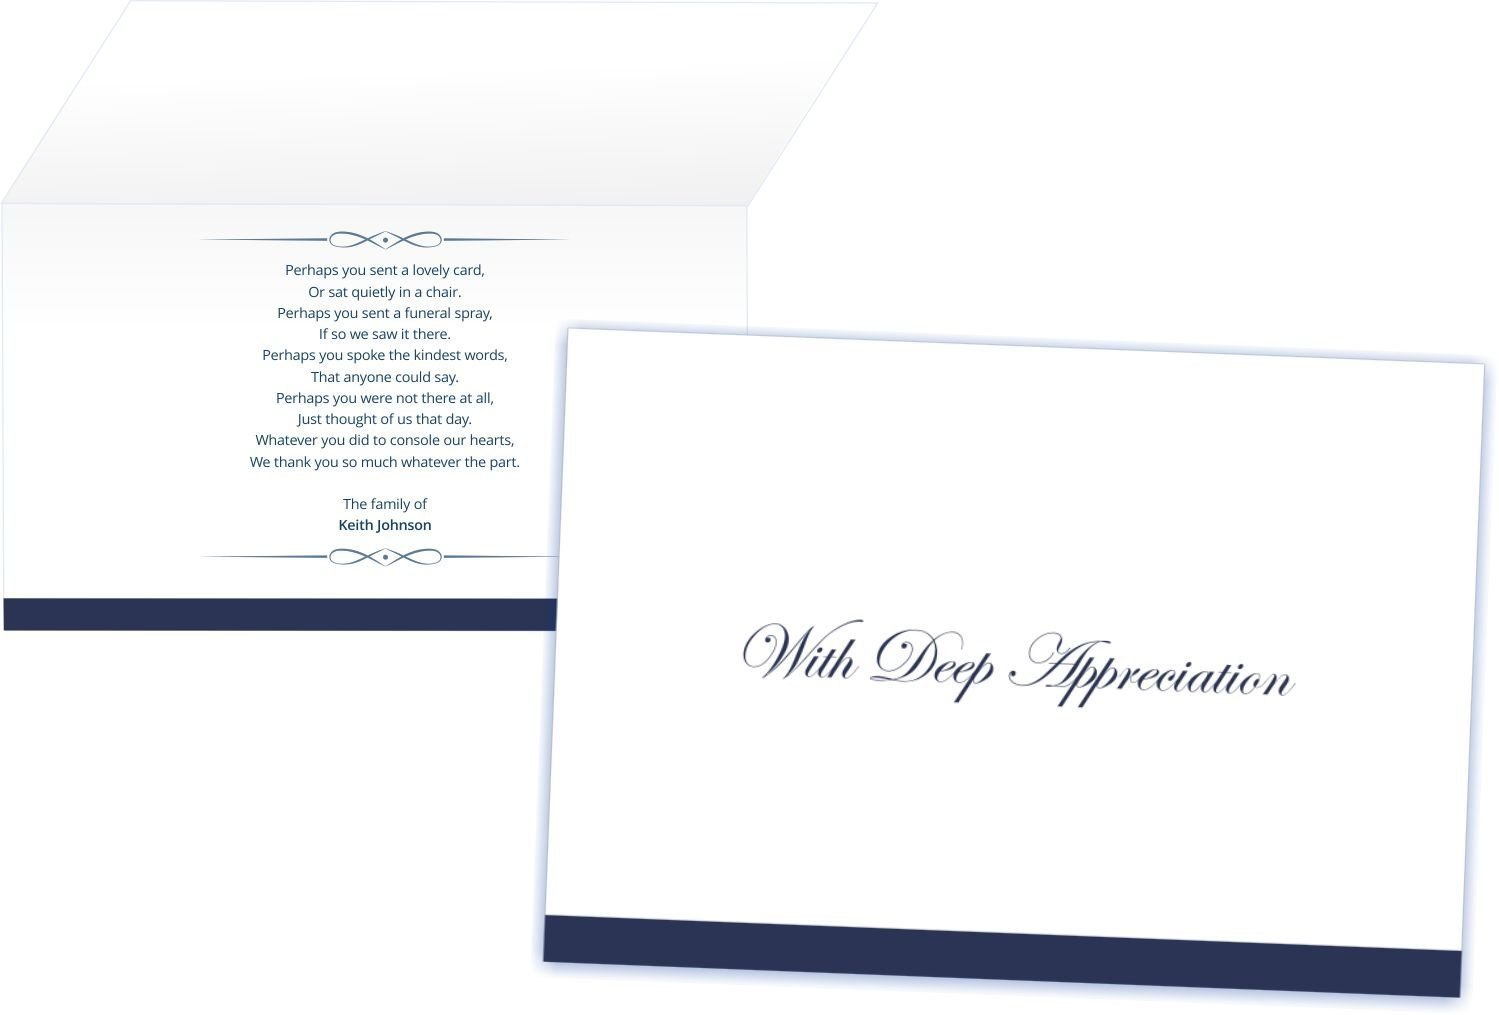 Amazon personalized funeral thank you cards and envelopes set amazon personalized funeral thank you cards and envelopes set of 50 standard health personal care izmirmasajfo